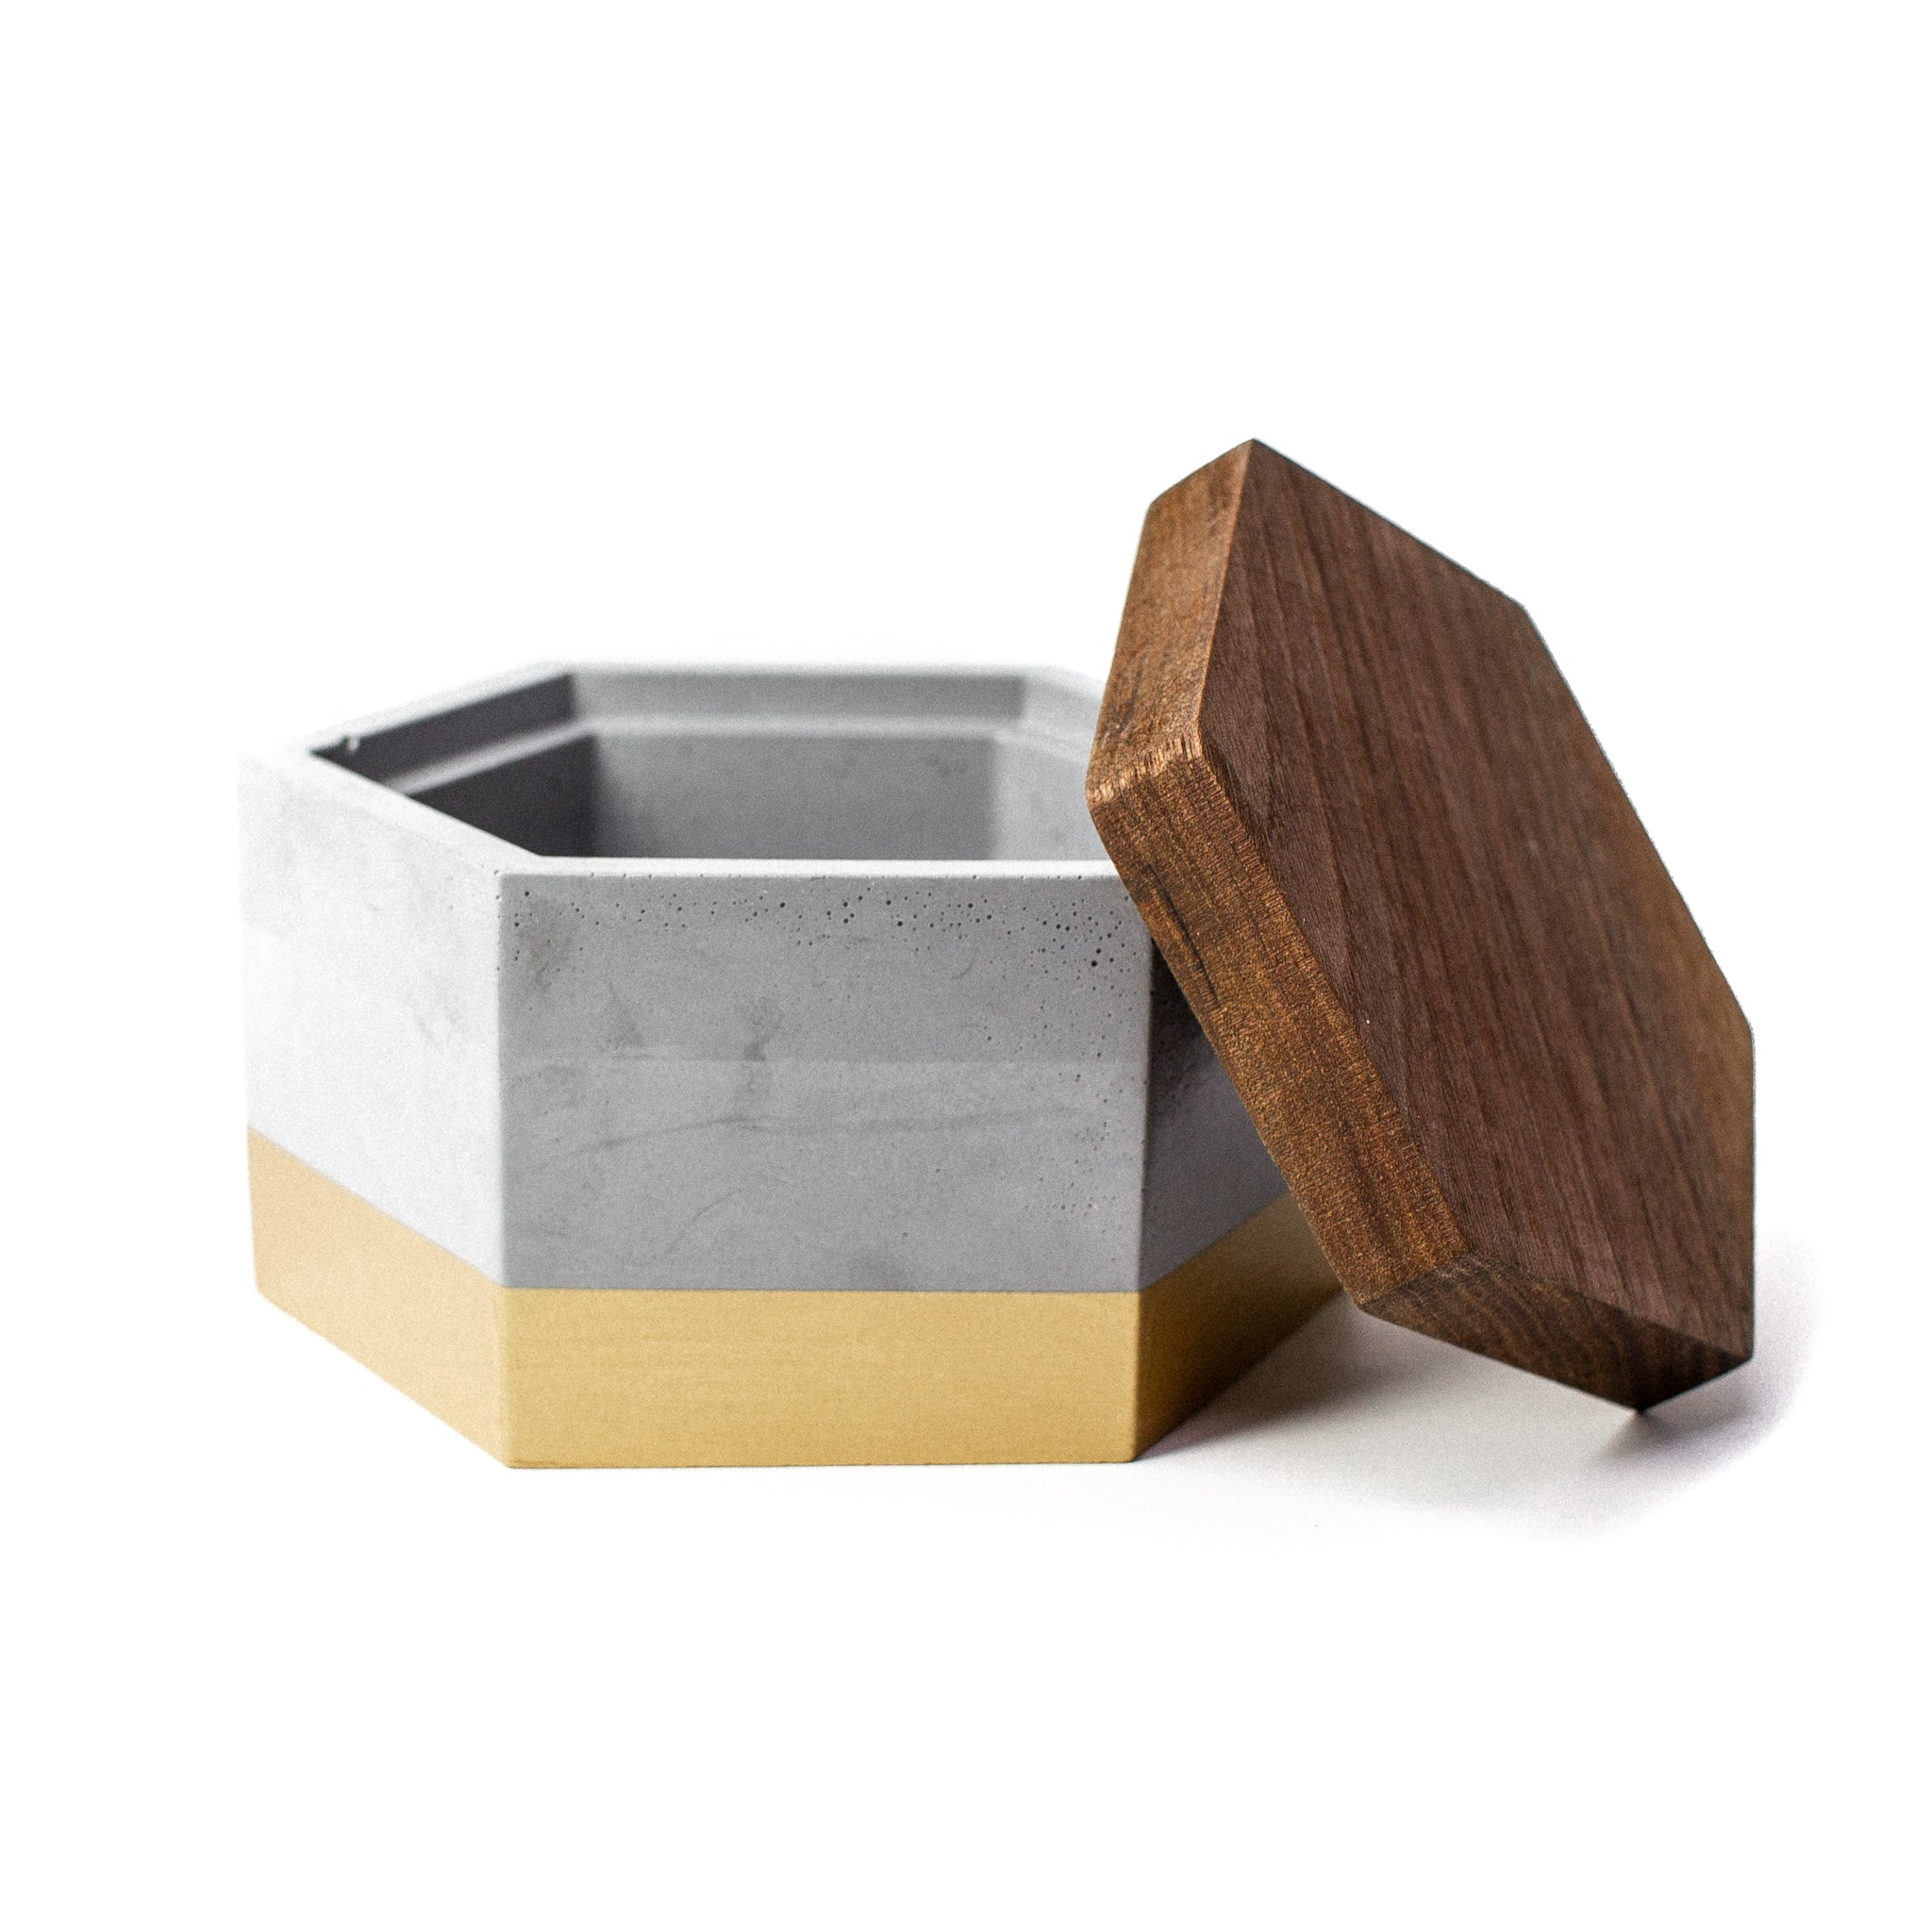 Concrete Hexagon Box (Gold) with Wooden Lid